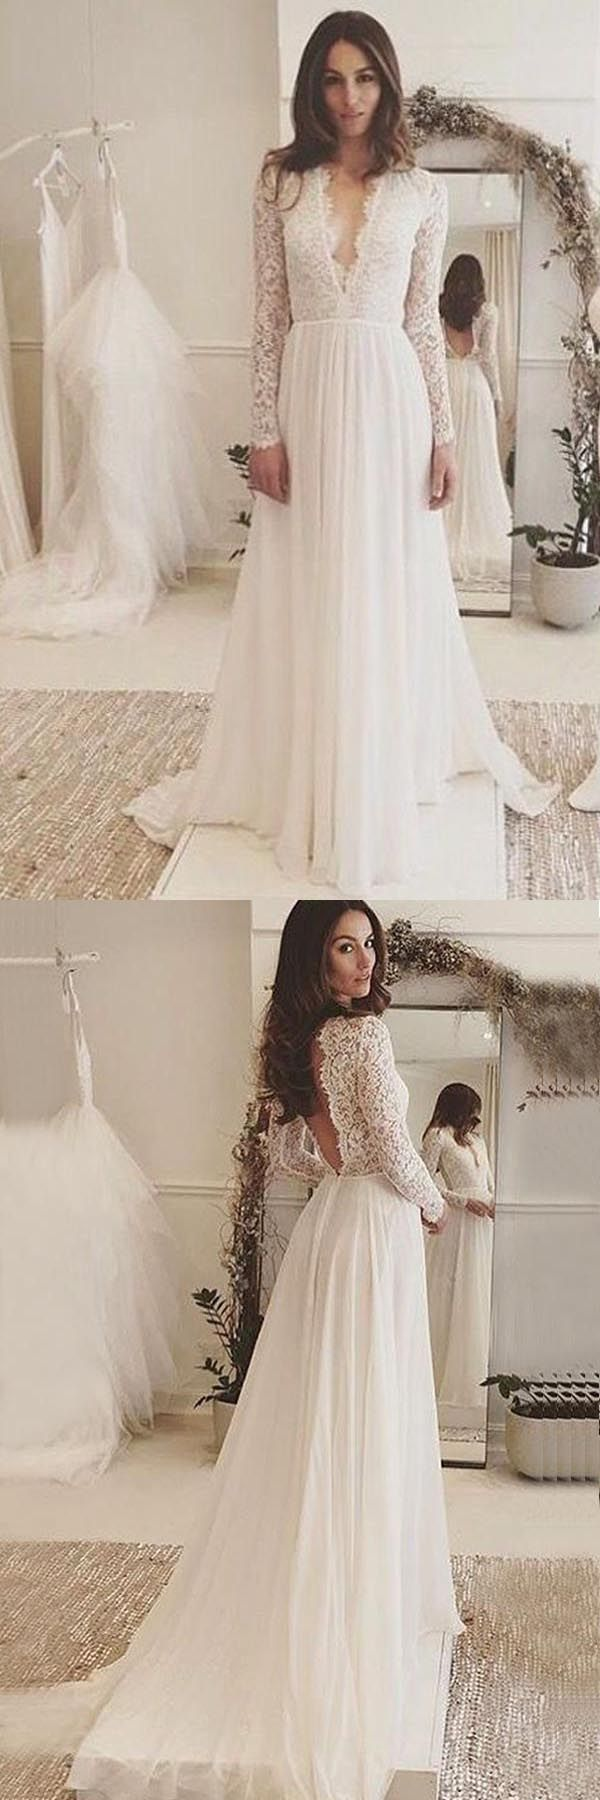 Vneck long sleeves backless ivory chiffon wedding dress with lace